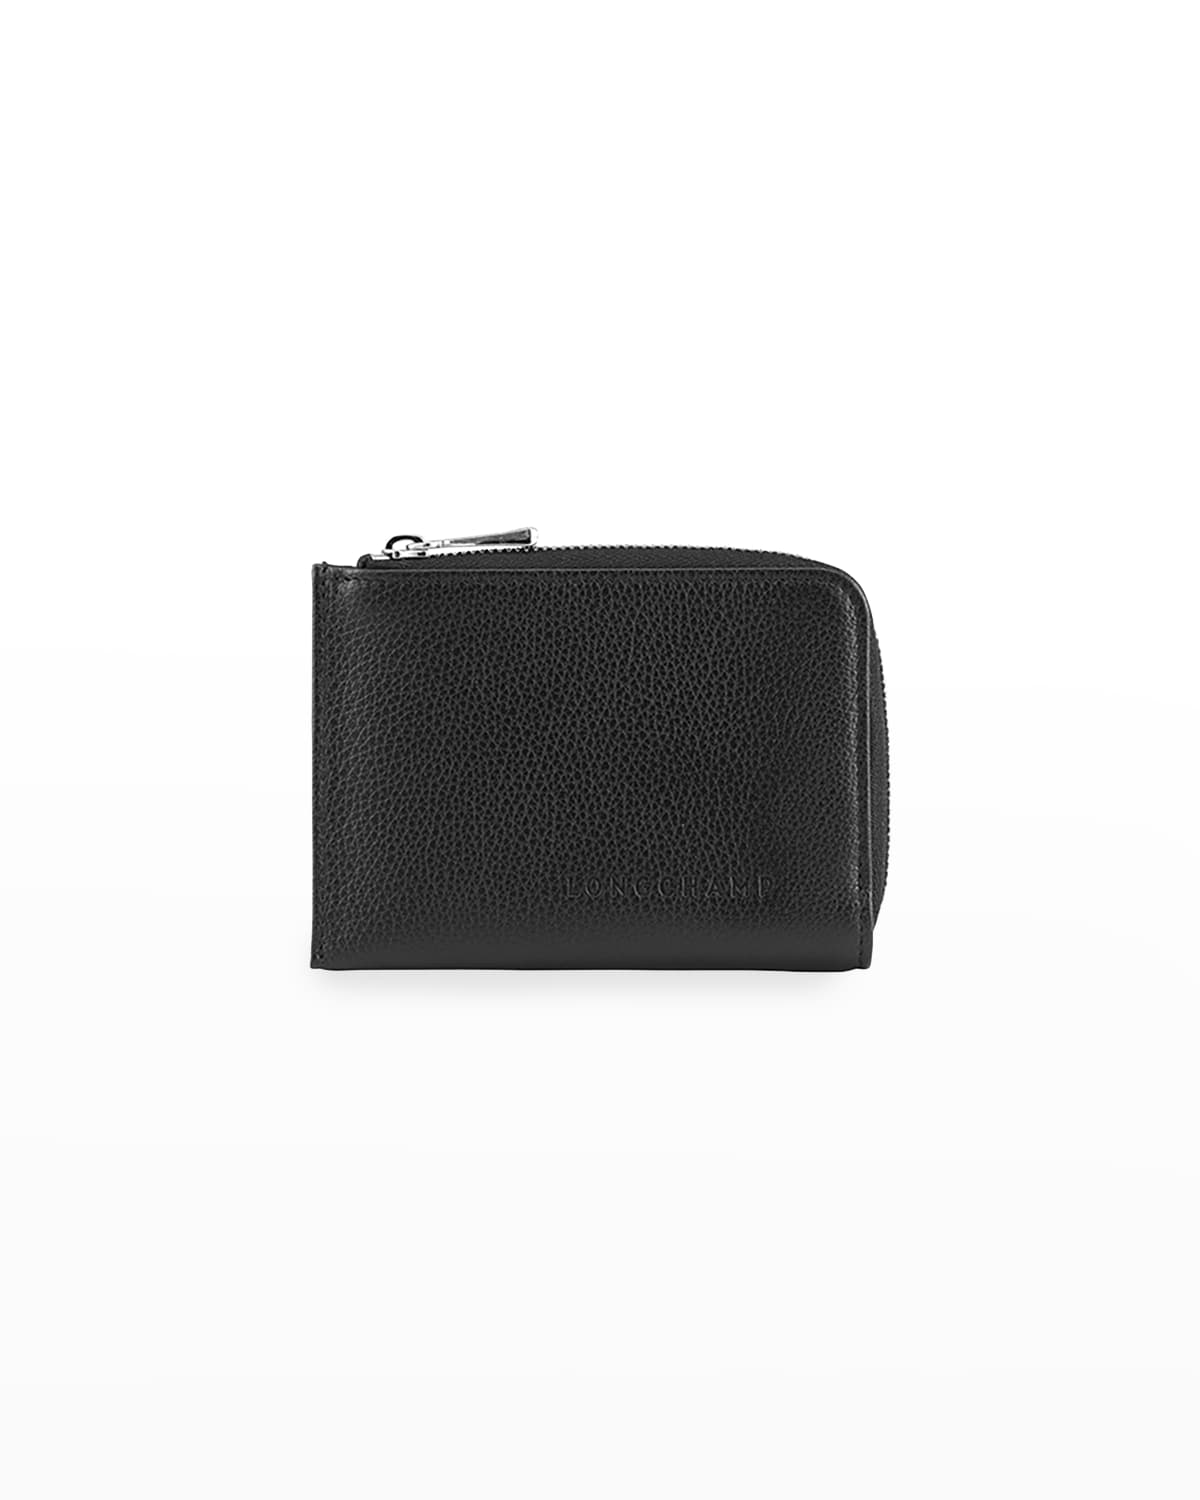 LF Zip Leather Coin Wallet